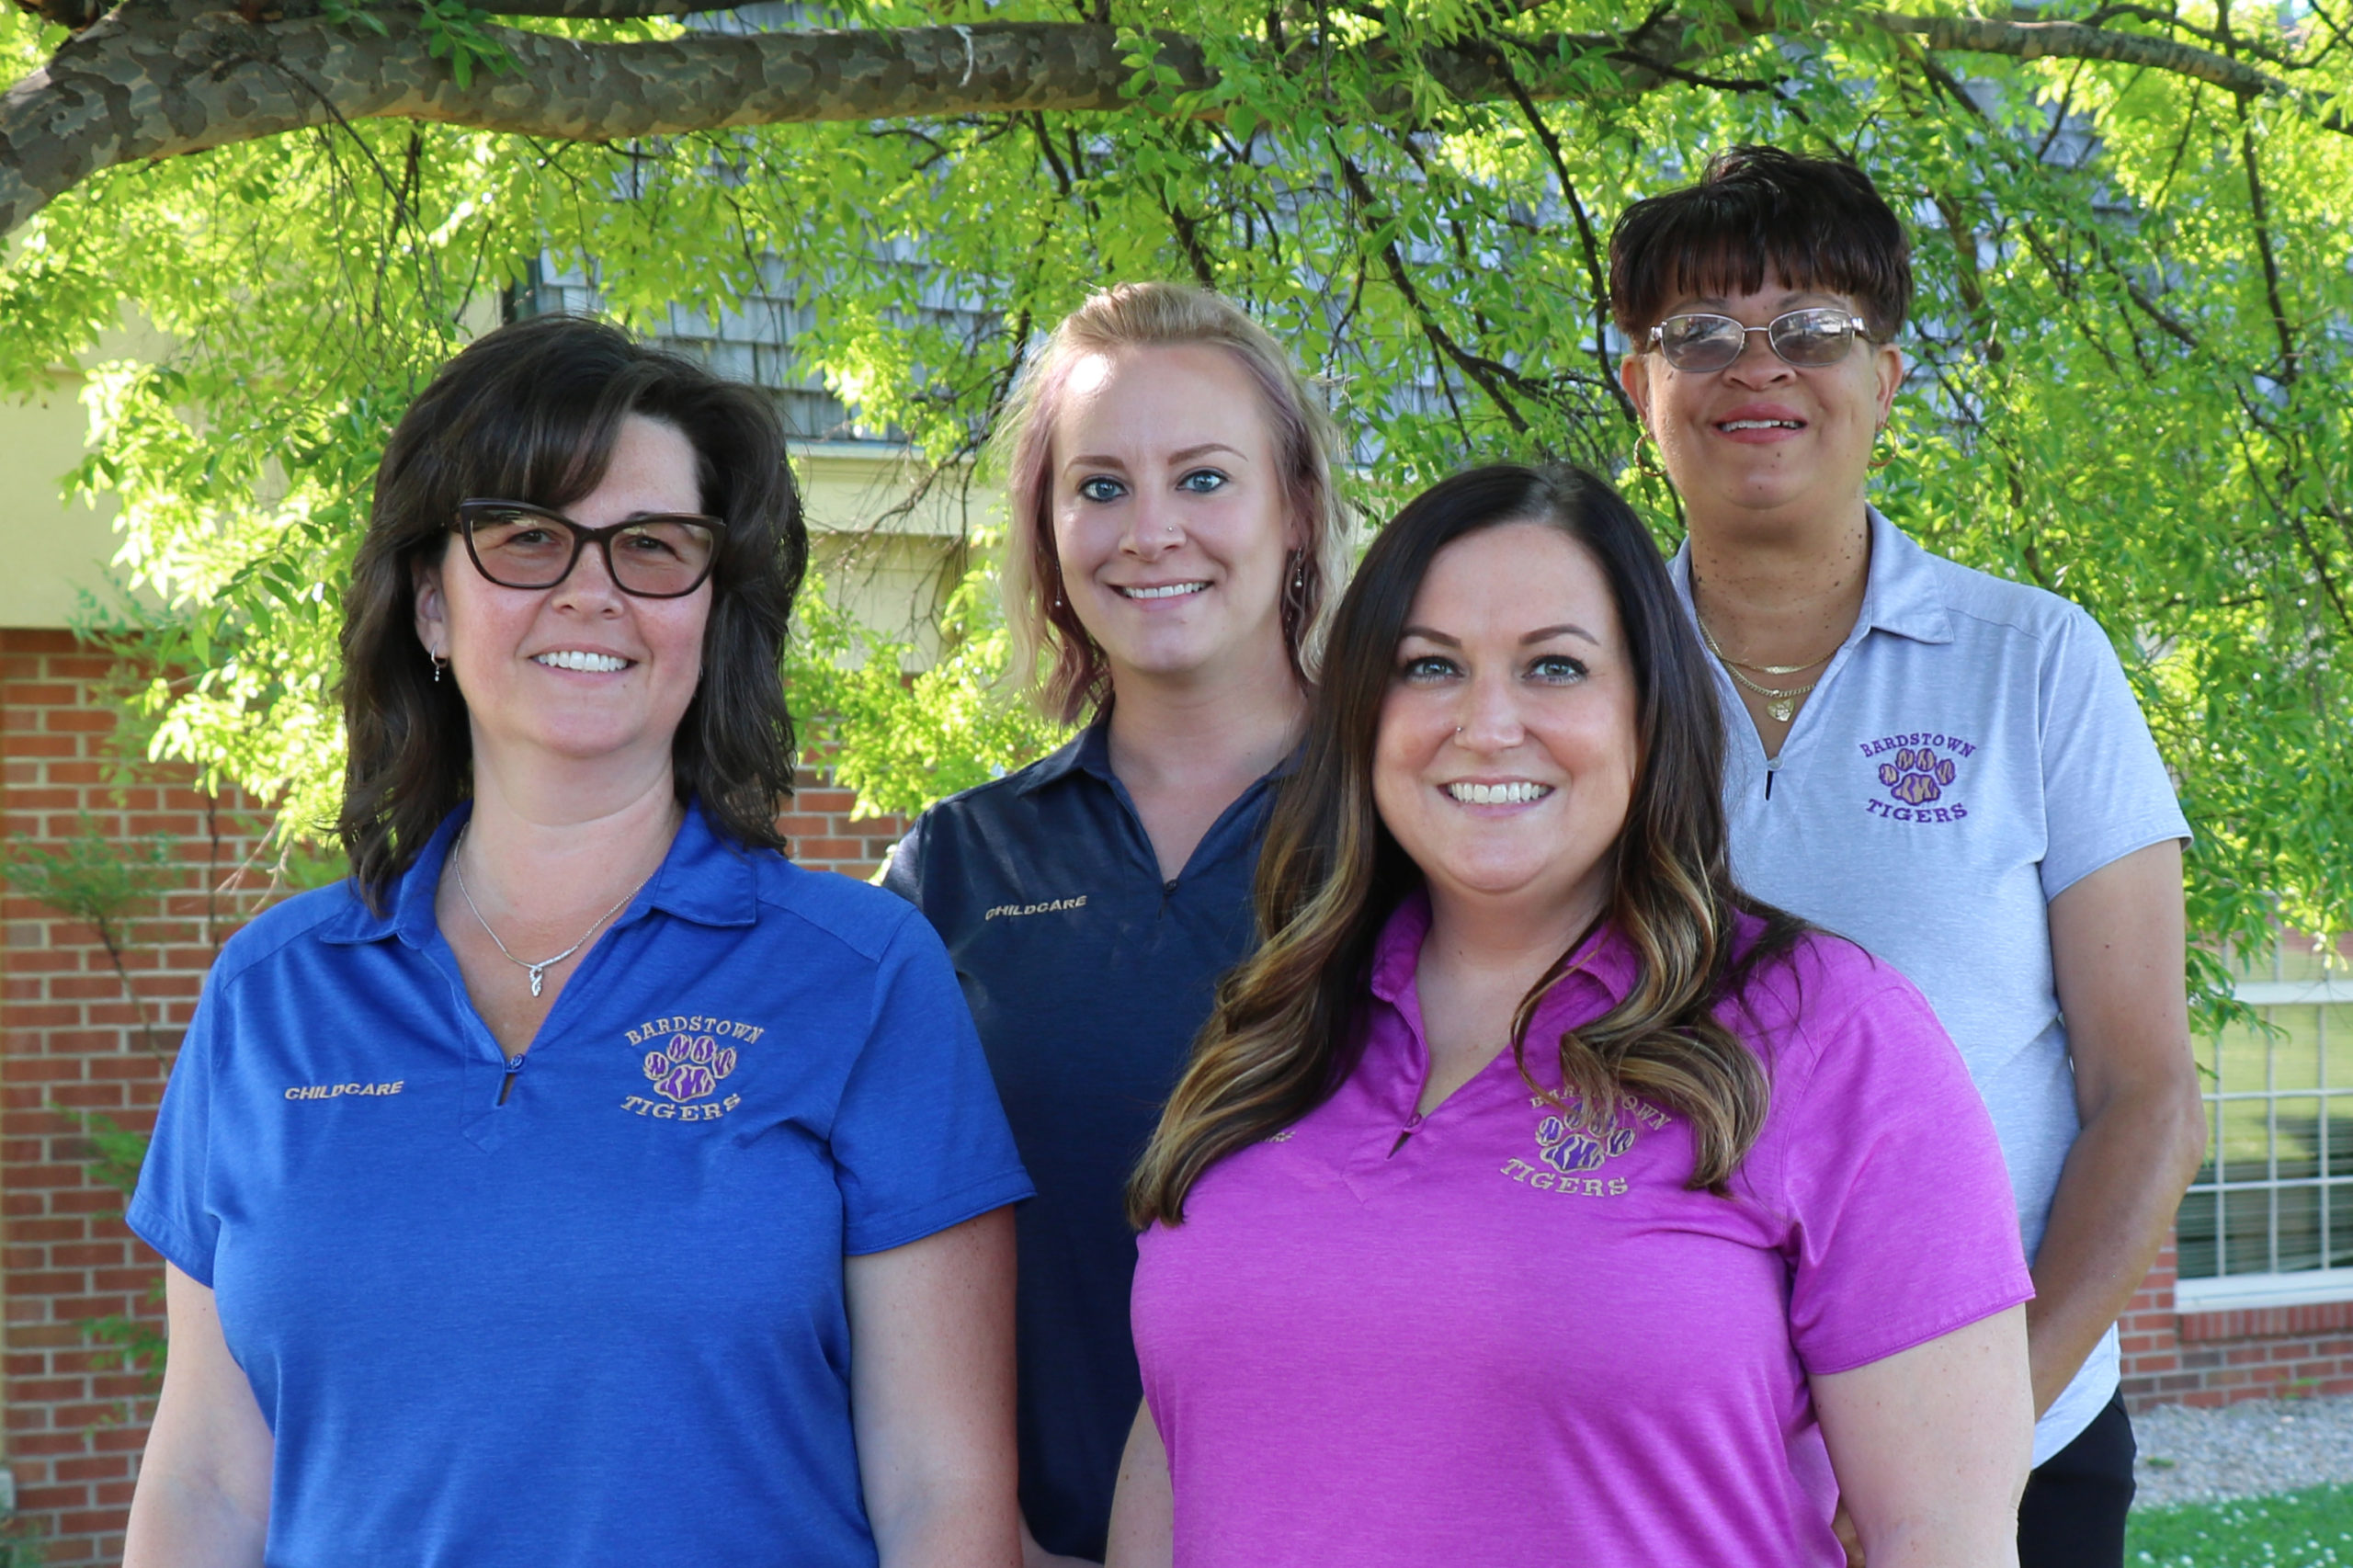 Bardstown Childcare directors Christy, Emily, Brenda, and Alicia